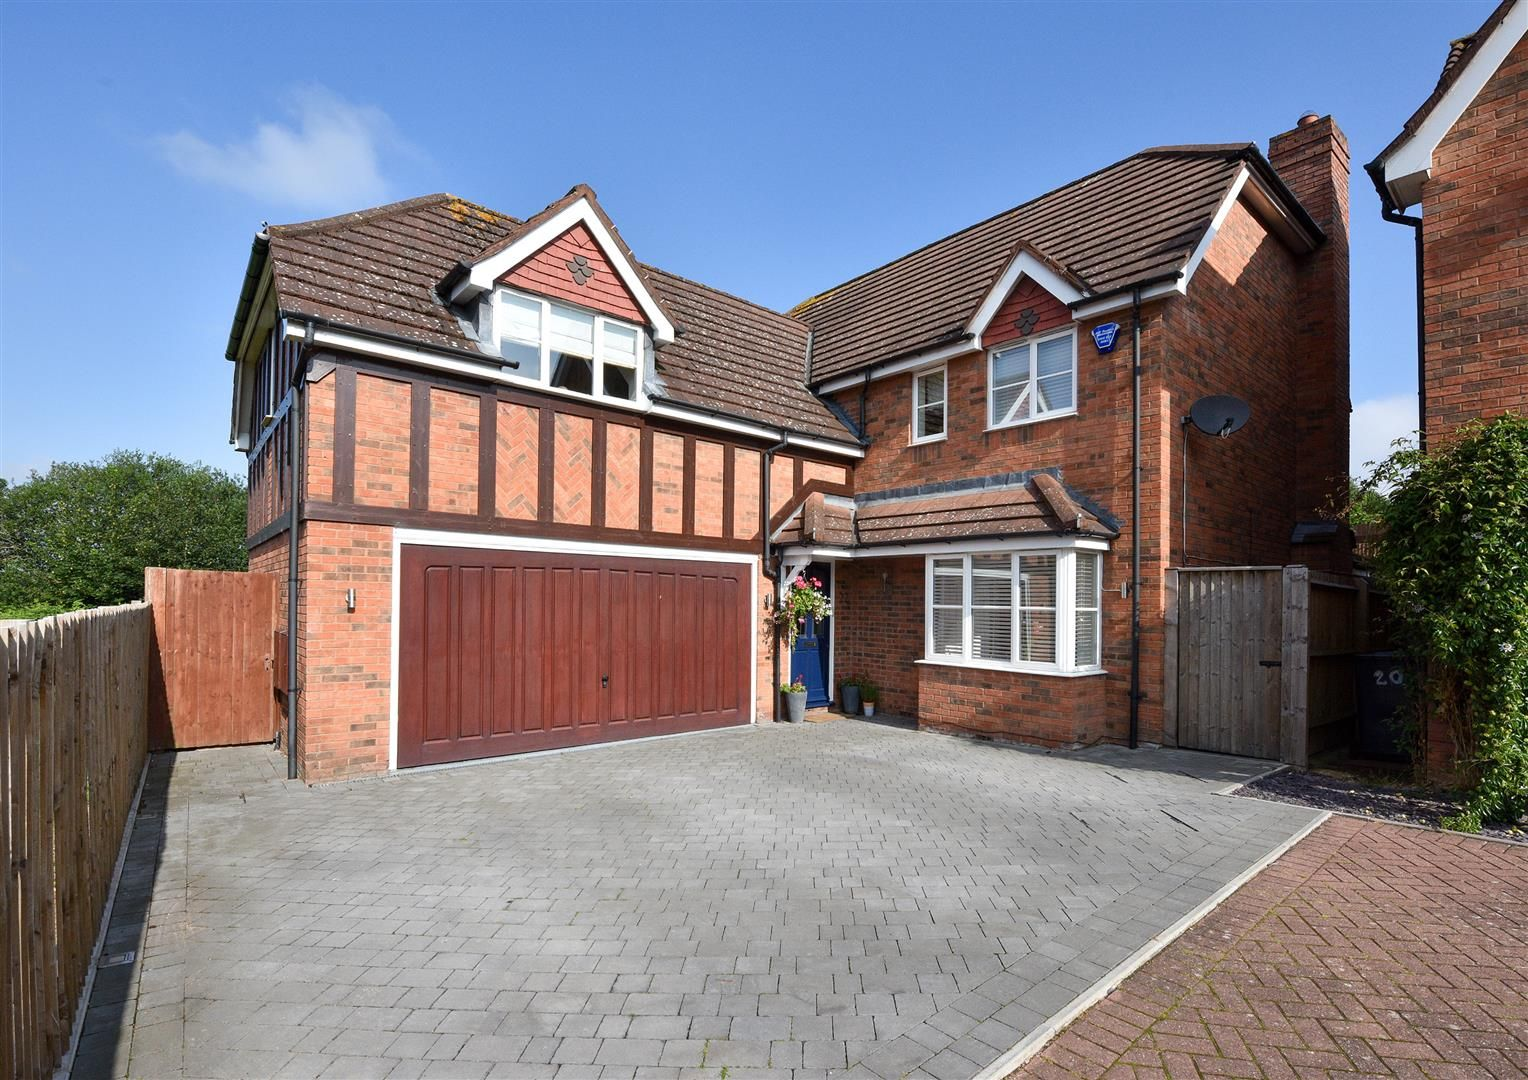 5 bed house for sale in Hagley  - Property Image 36